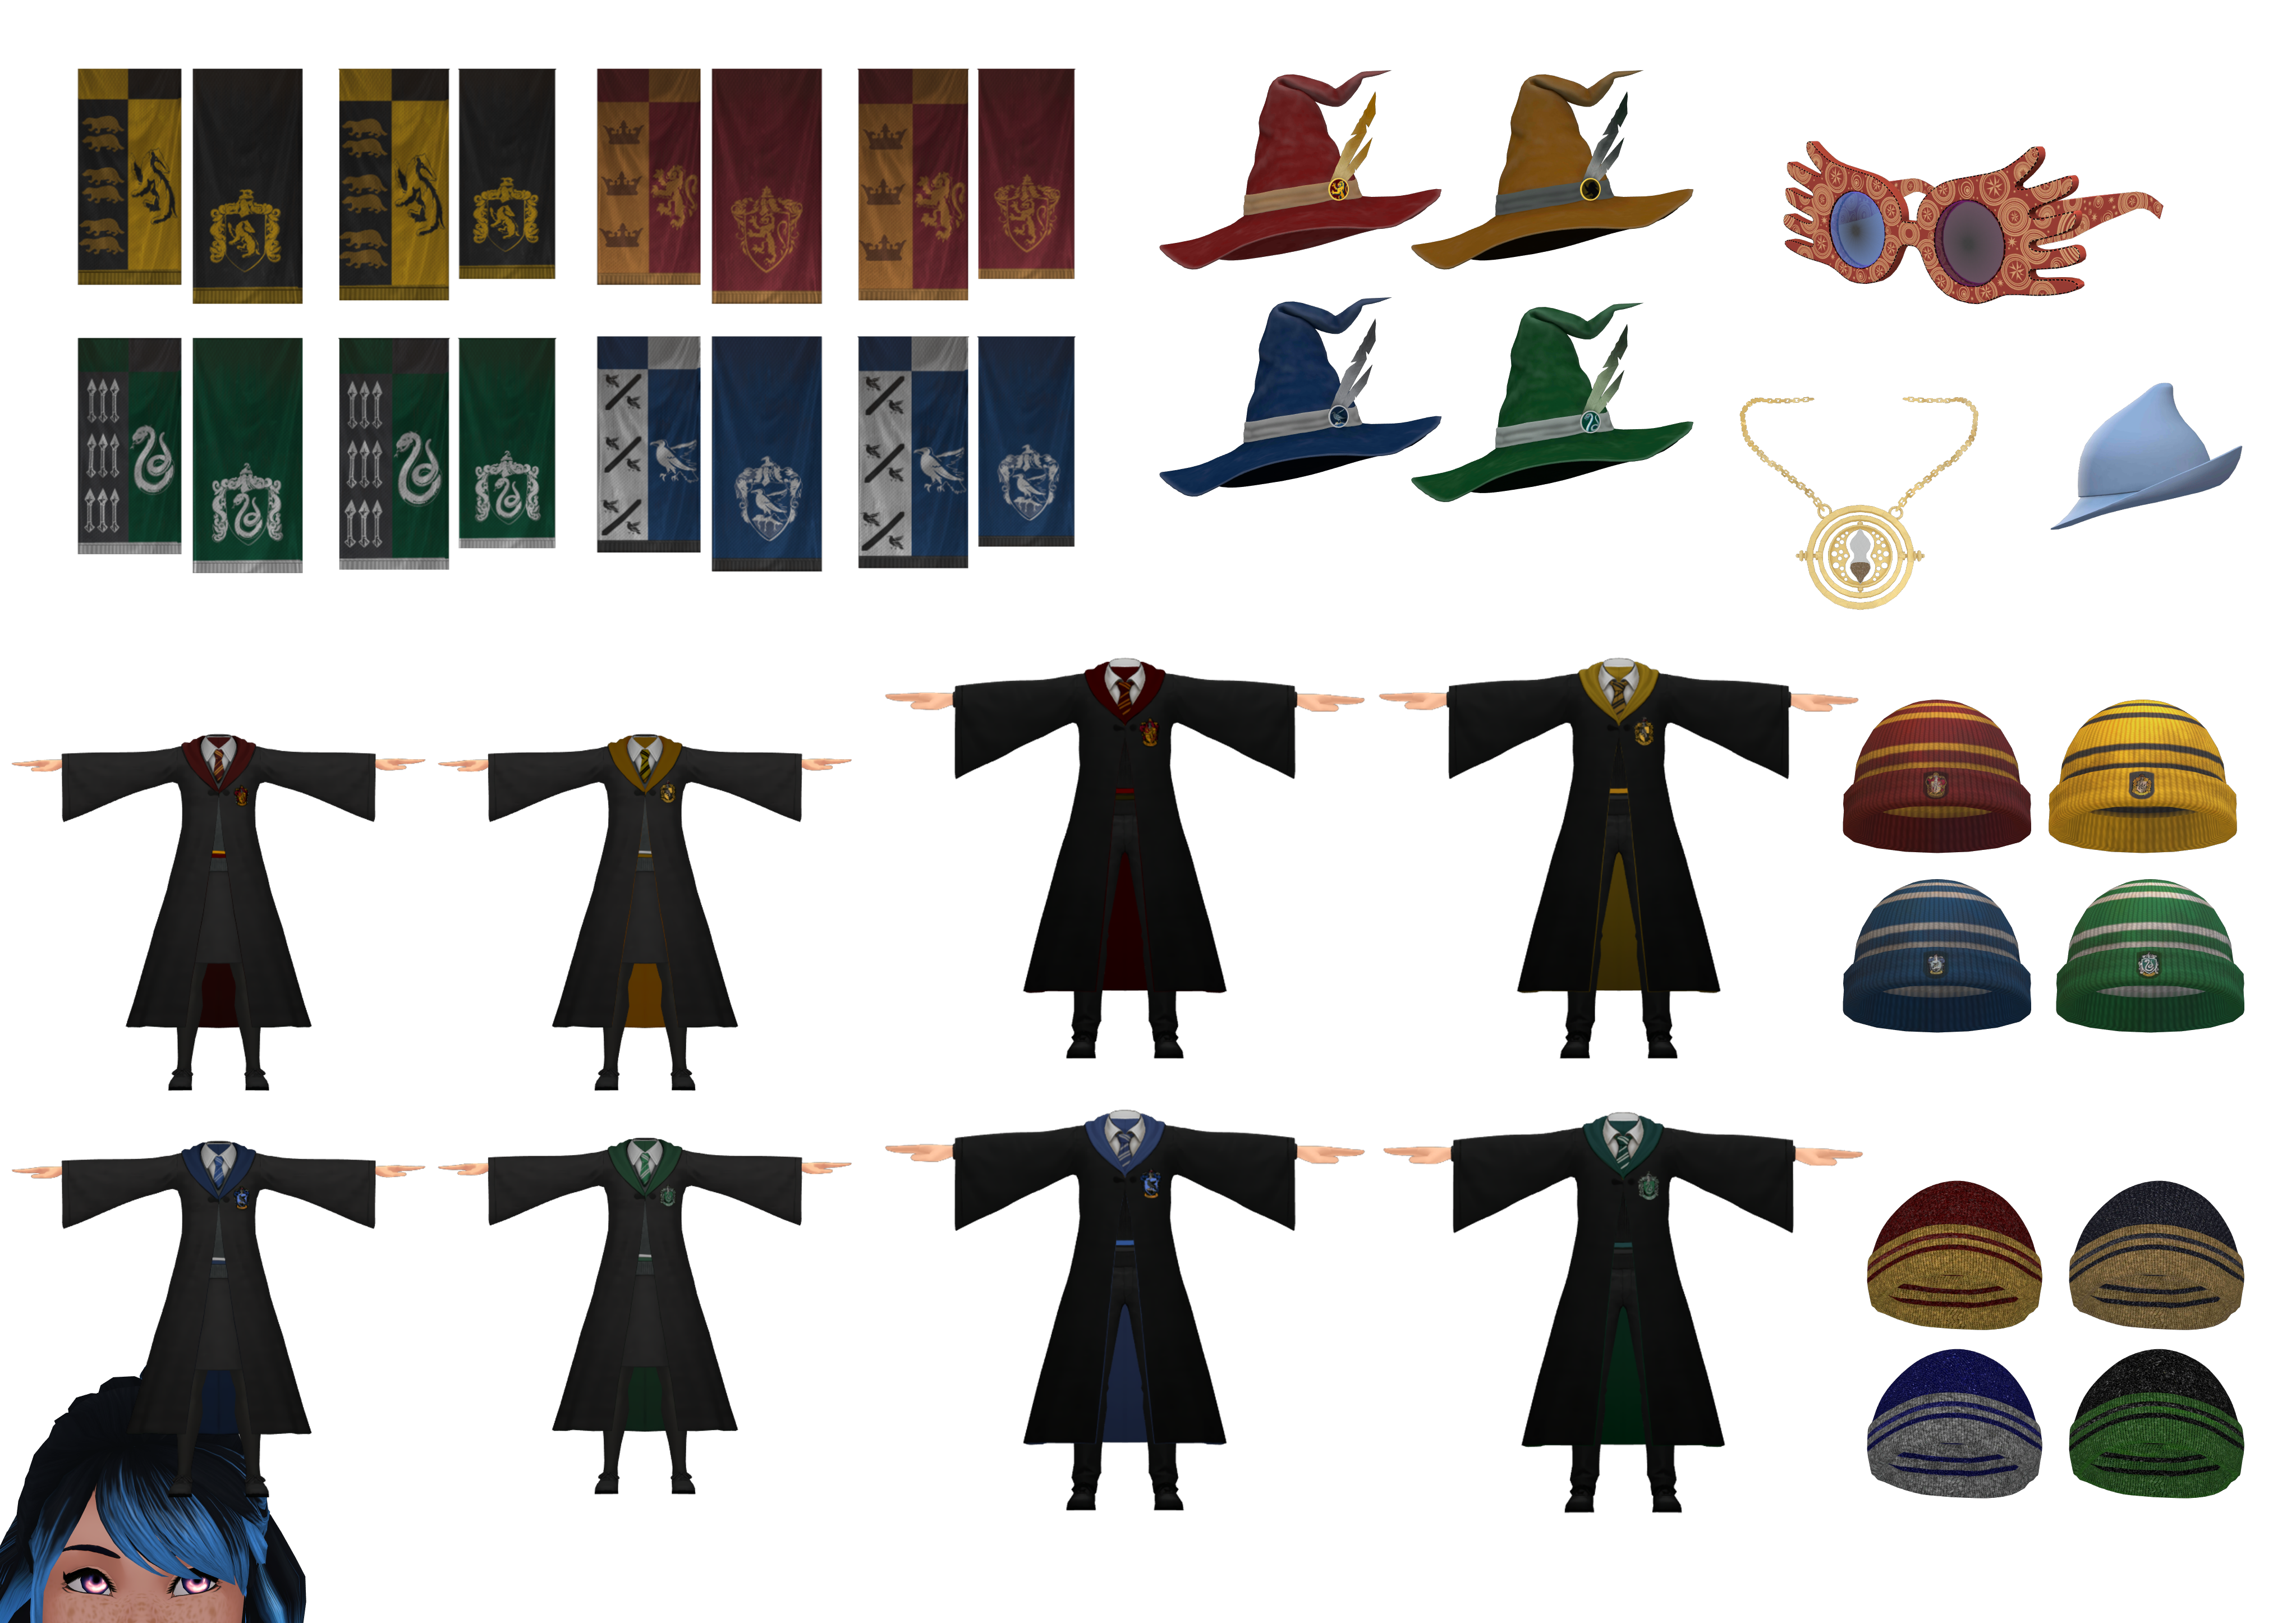 Mmd Hogwarts Robes And Accessories Dl By Naminf On Deviantart